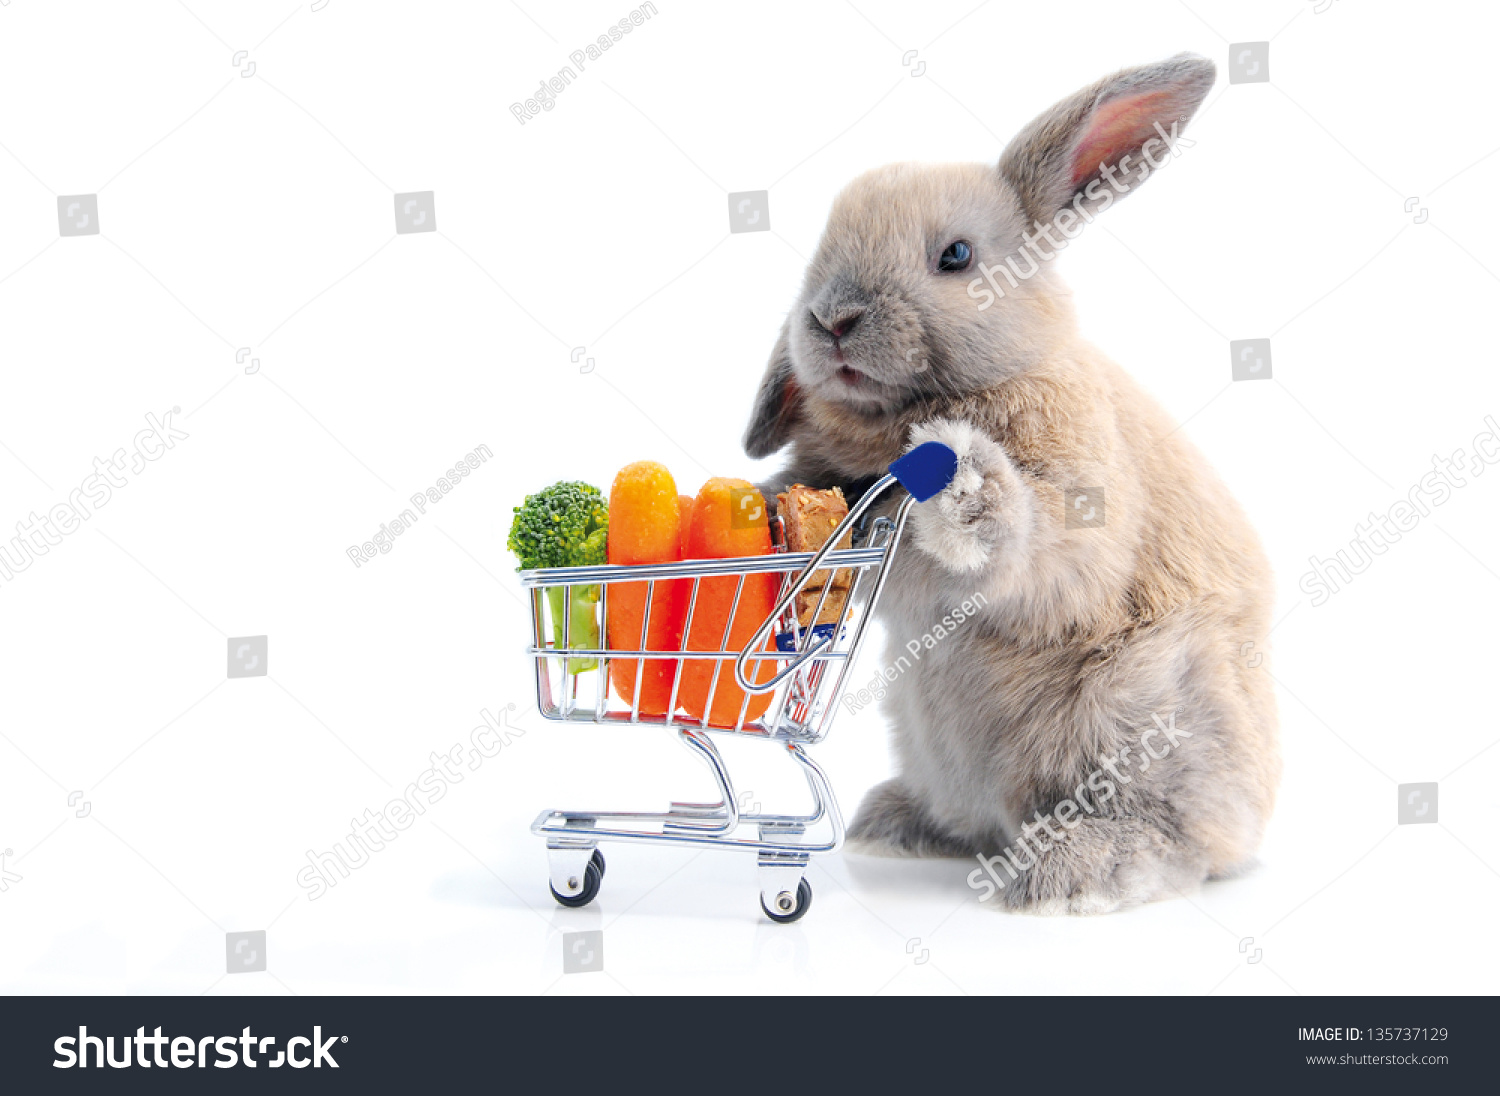 Cute Bunny Shopping For His Favorite Snacks With Shopping